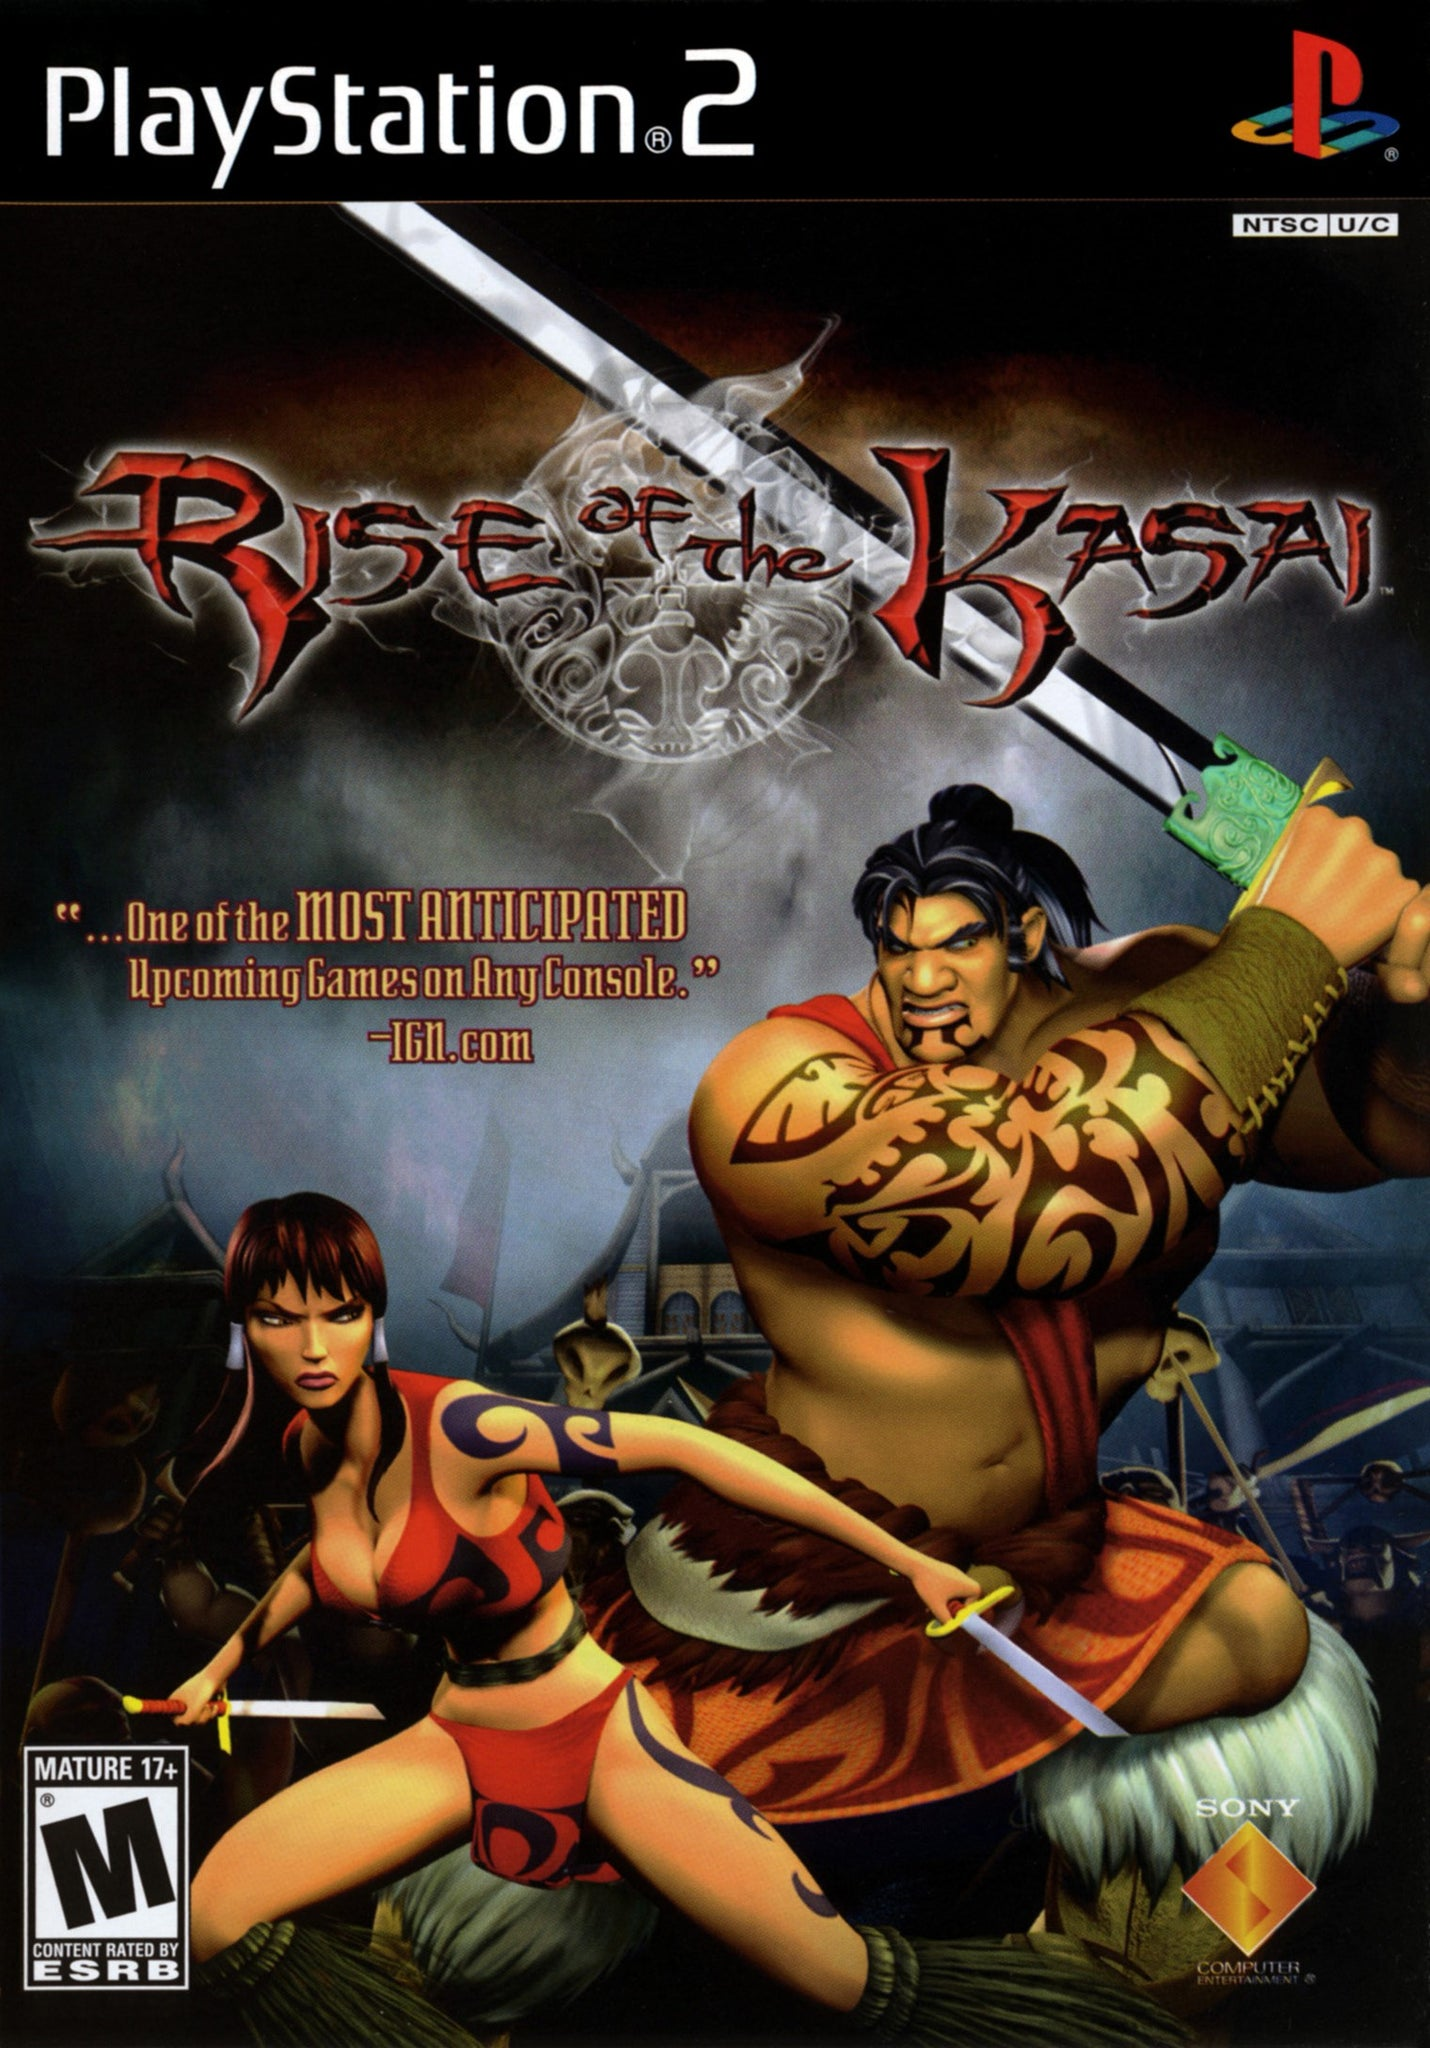 Rise of the Kasai - PS2 (Pre-owned)